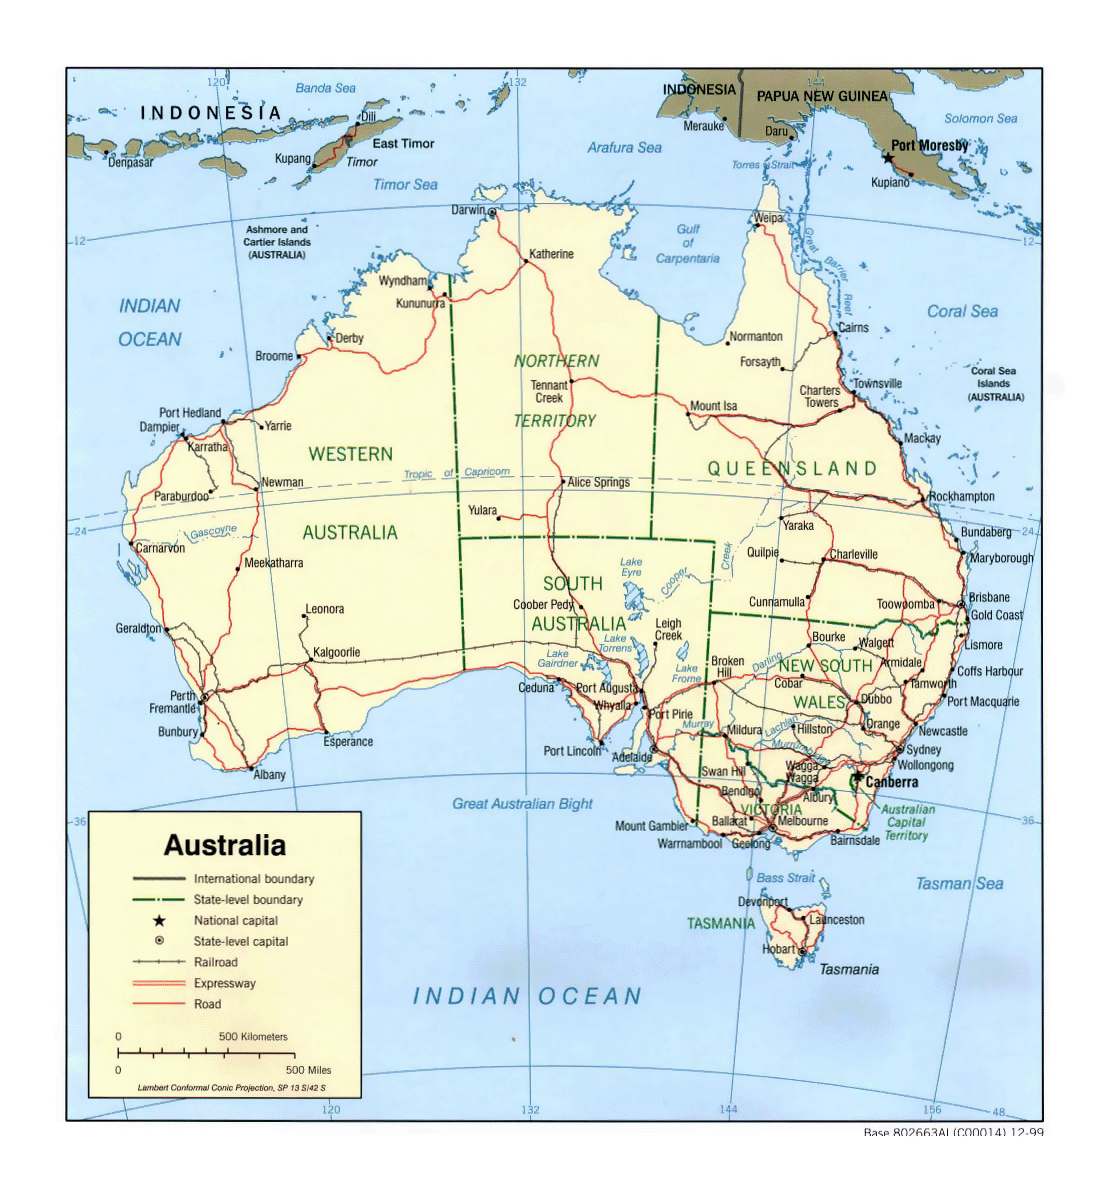 Detailed Political And Administrative Map Of Australia With Roads - Australia cities map